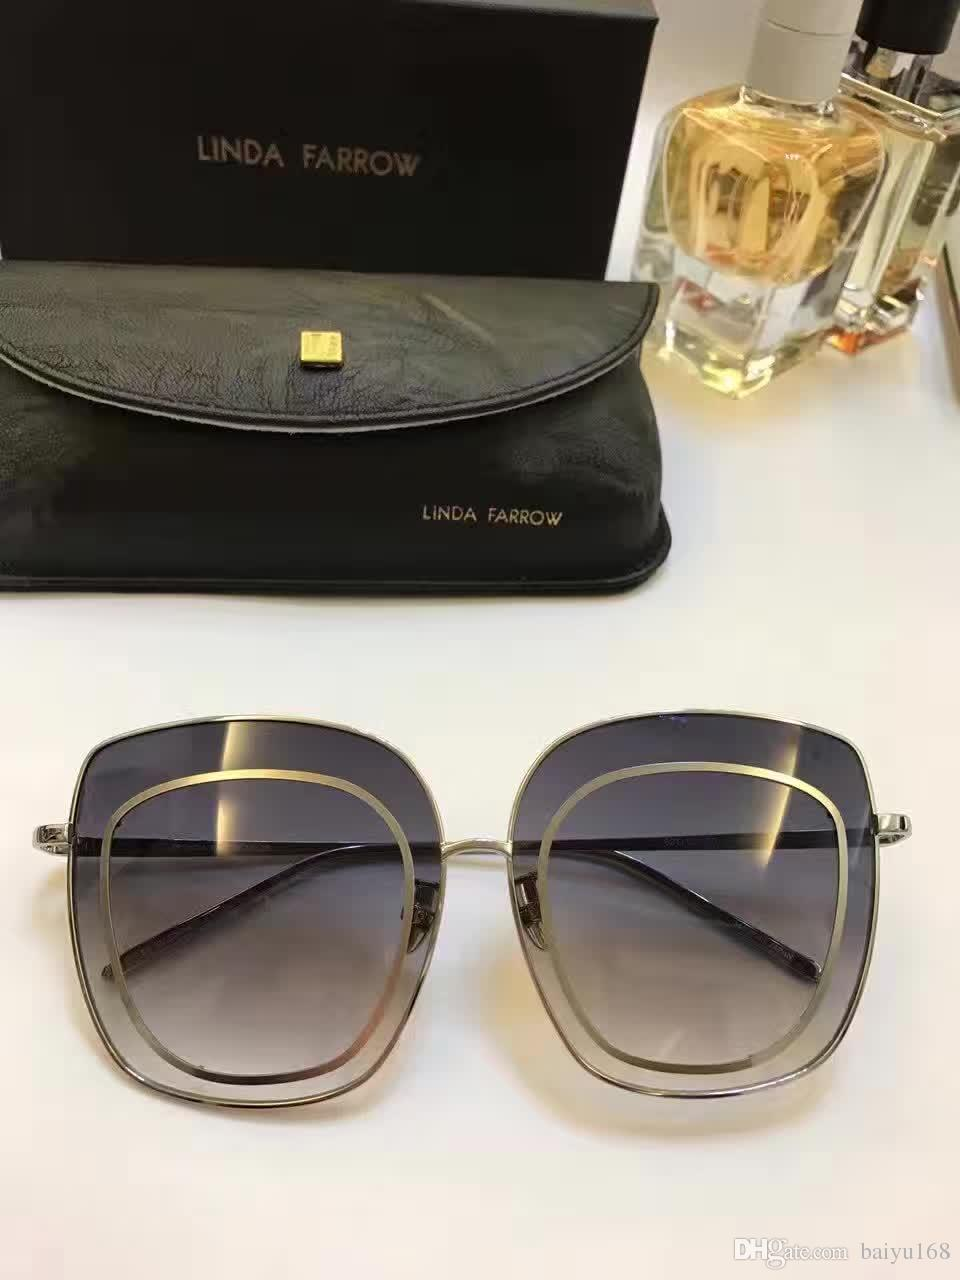 Linda Farriw | Linda Farrow Sunglasses | Luxury Optical Frames